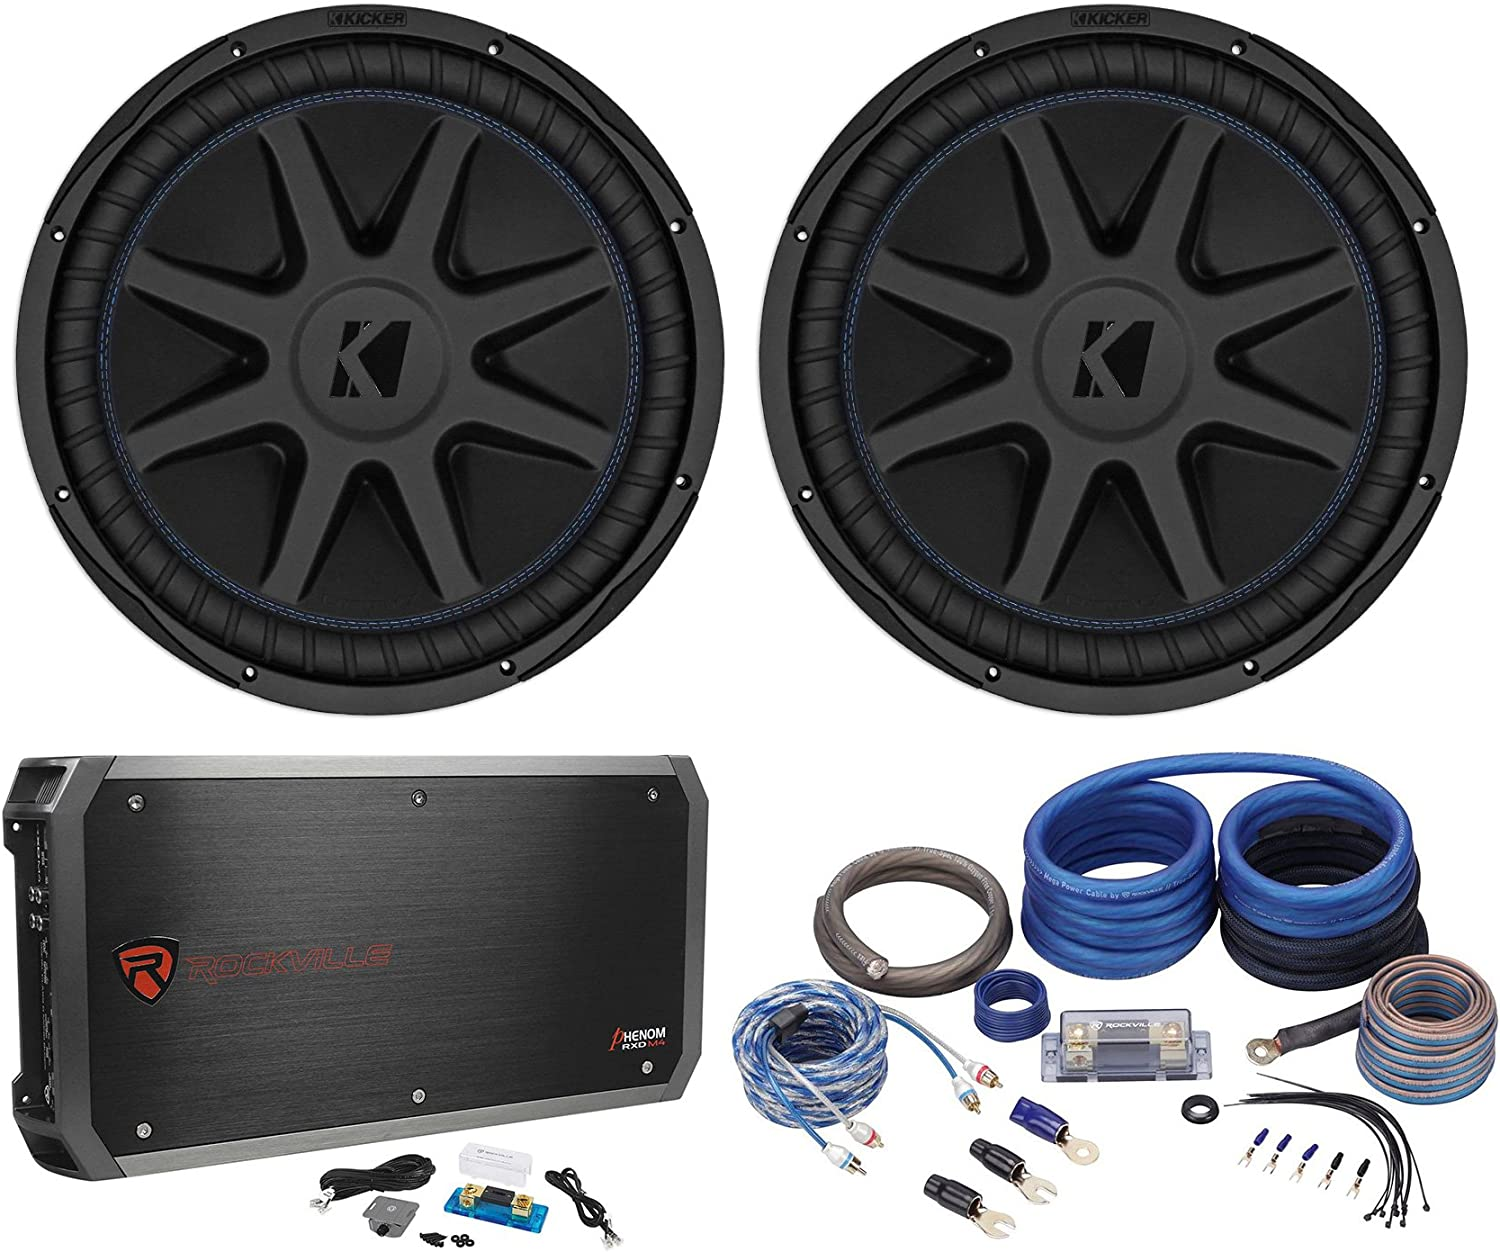 "(2) Kicker 44CVX154 Comp VX CVX 15"" 2000w RMS Car Subwoofers+Amplifier+Amp Kit 81RMN6y06HLSL1500_"